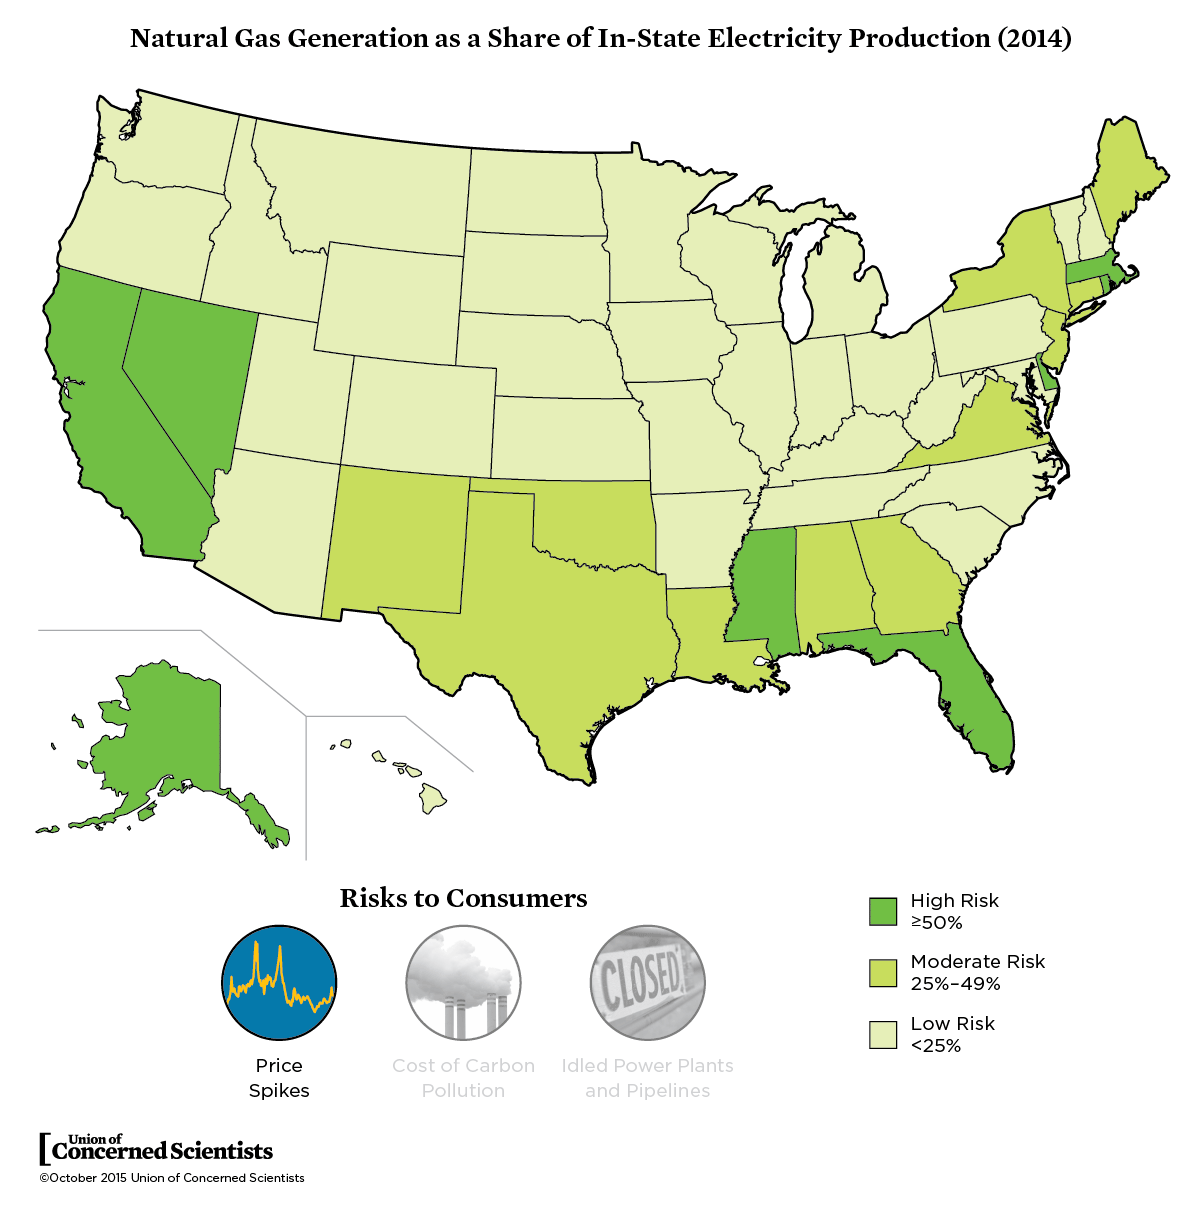 Rating The States On Their Risk Of Natural Gas Overreliance